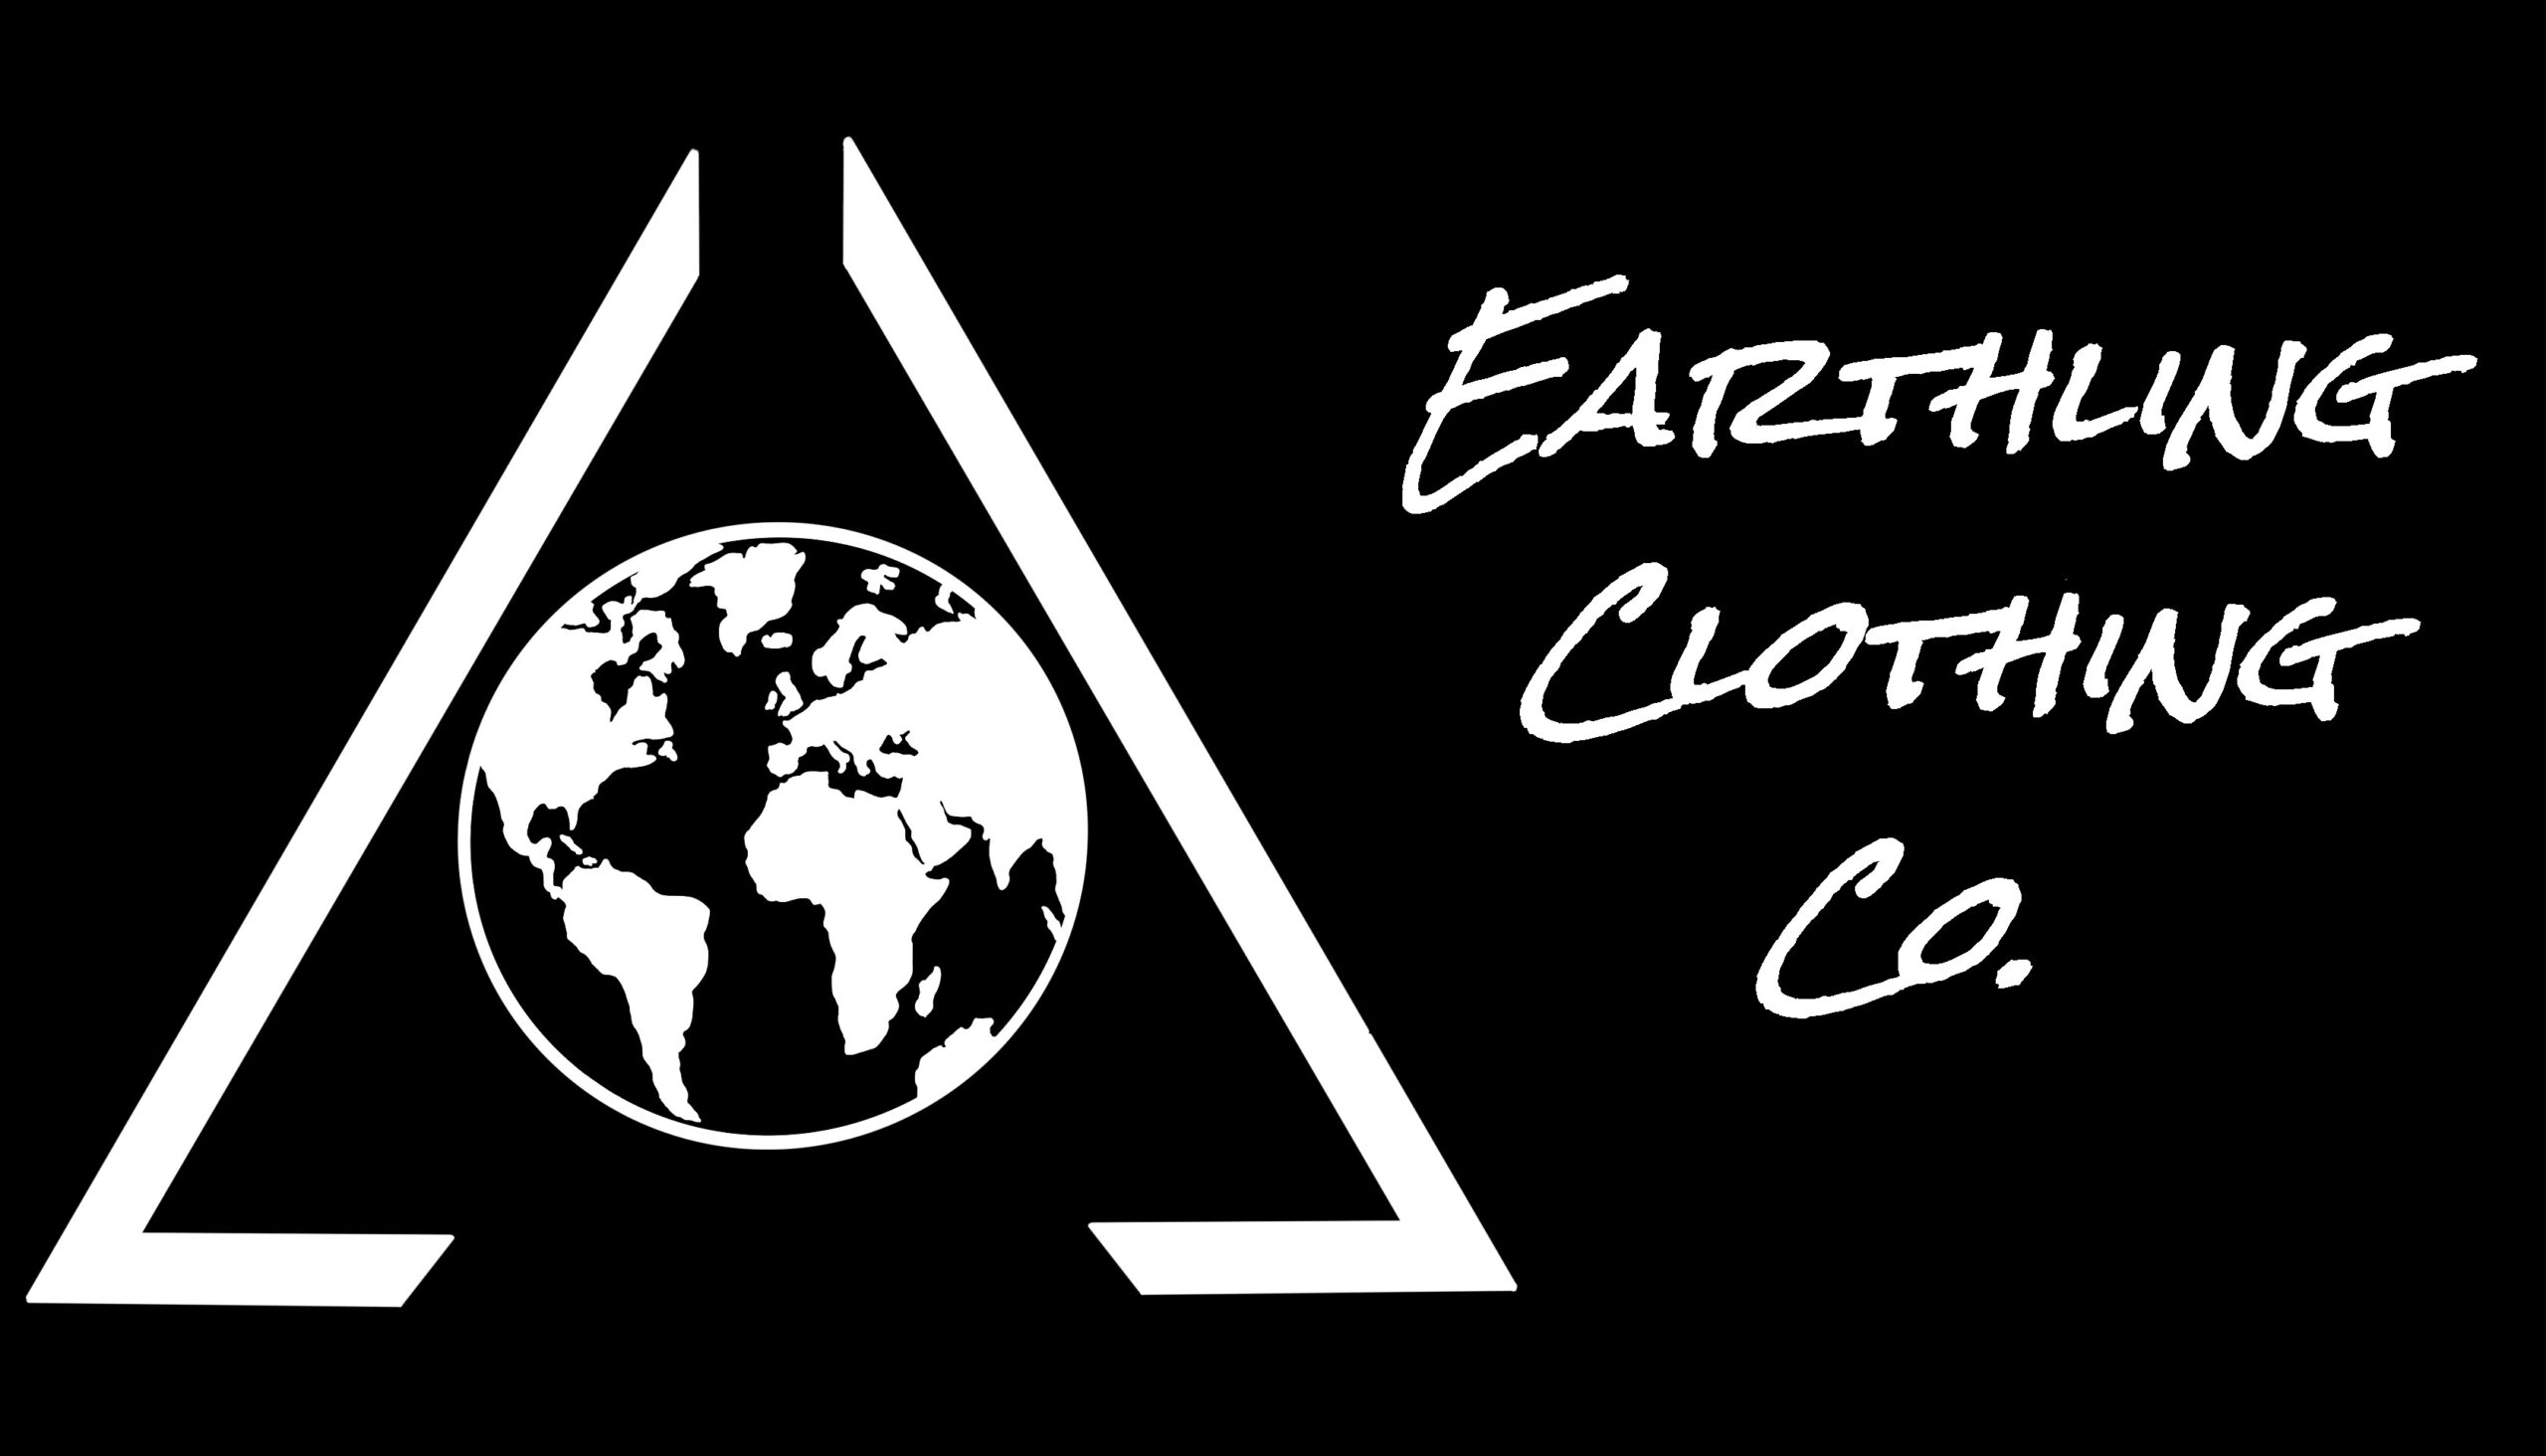 Earthling Clothing Co.